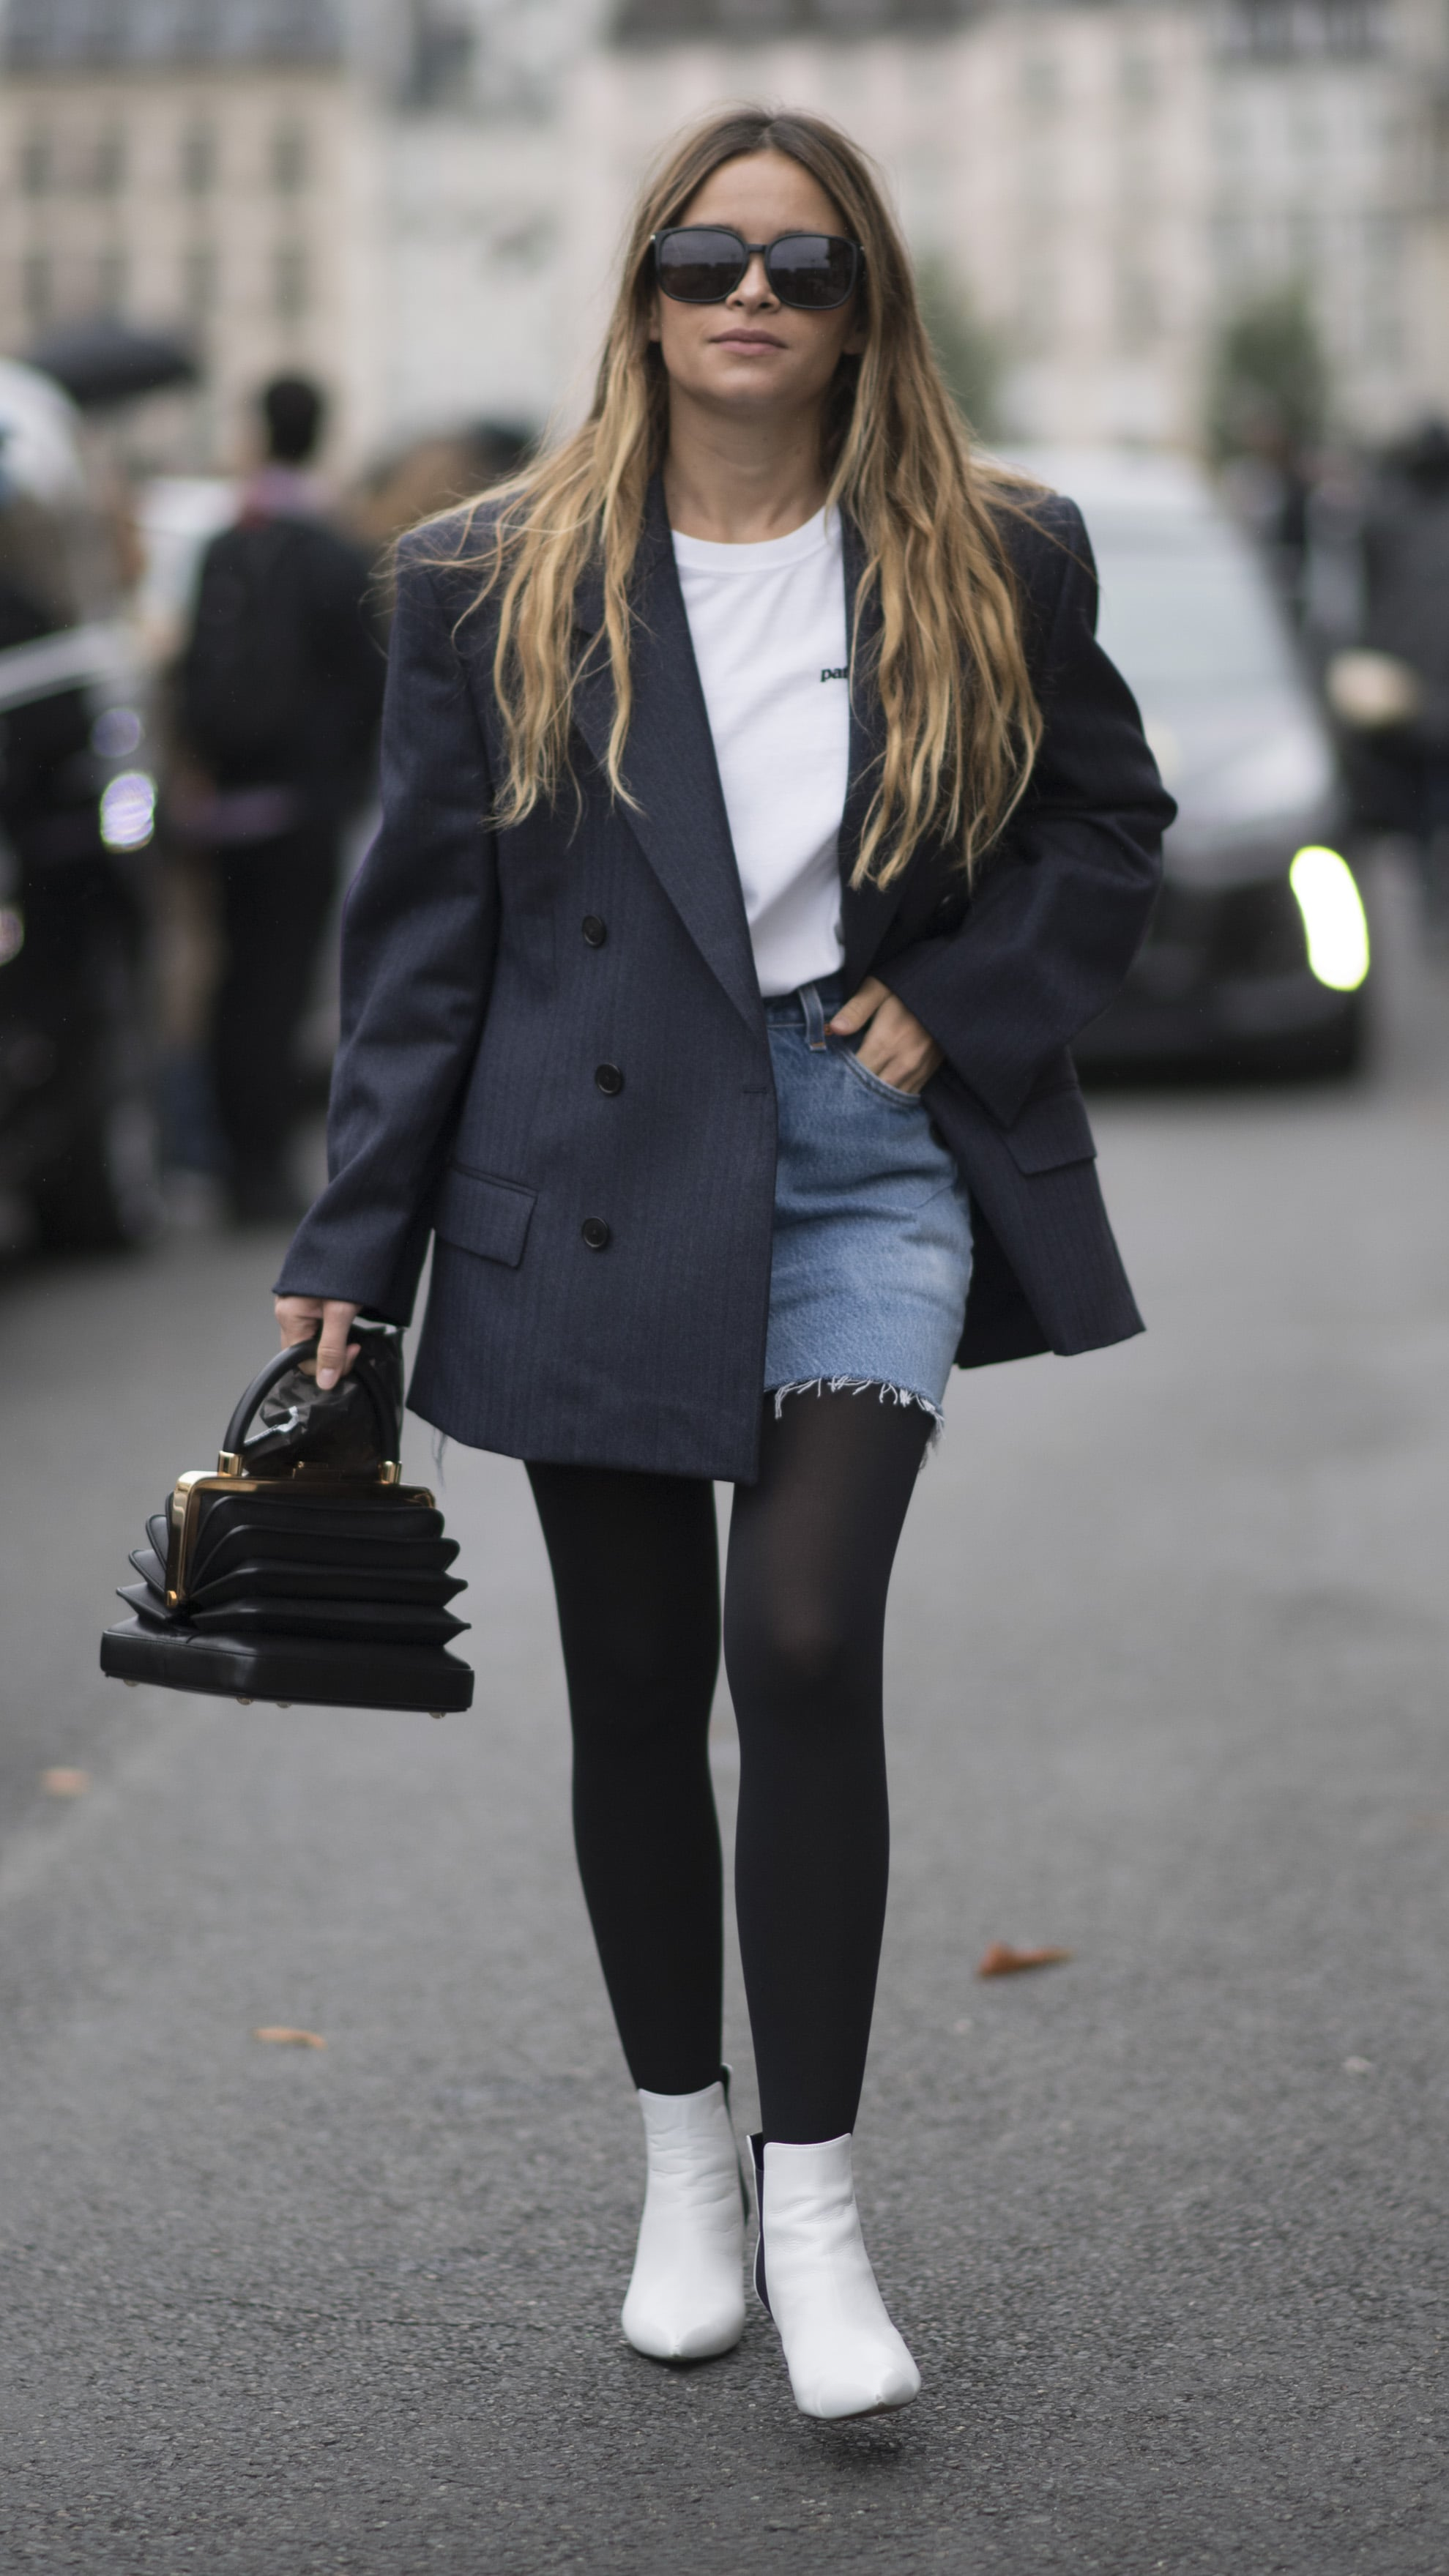 authentic quality outlet on sale special sales Wear Thick Black Tights With Your Distressed Denim Skirt ...